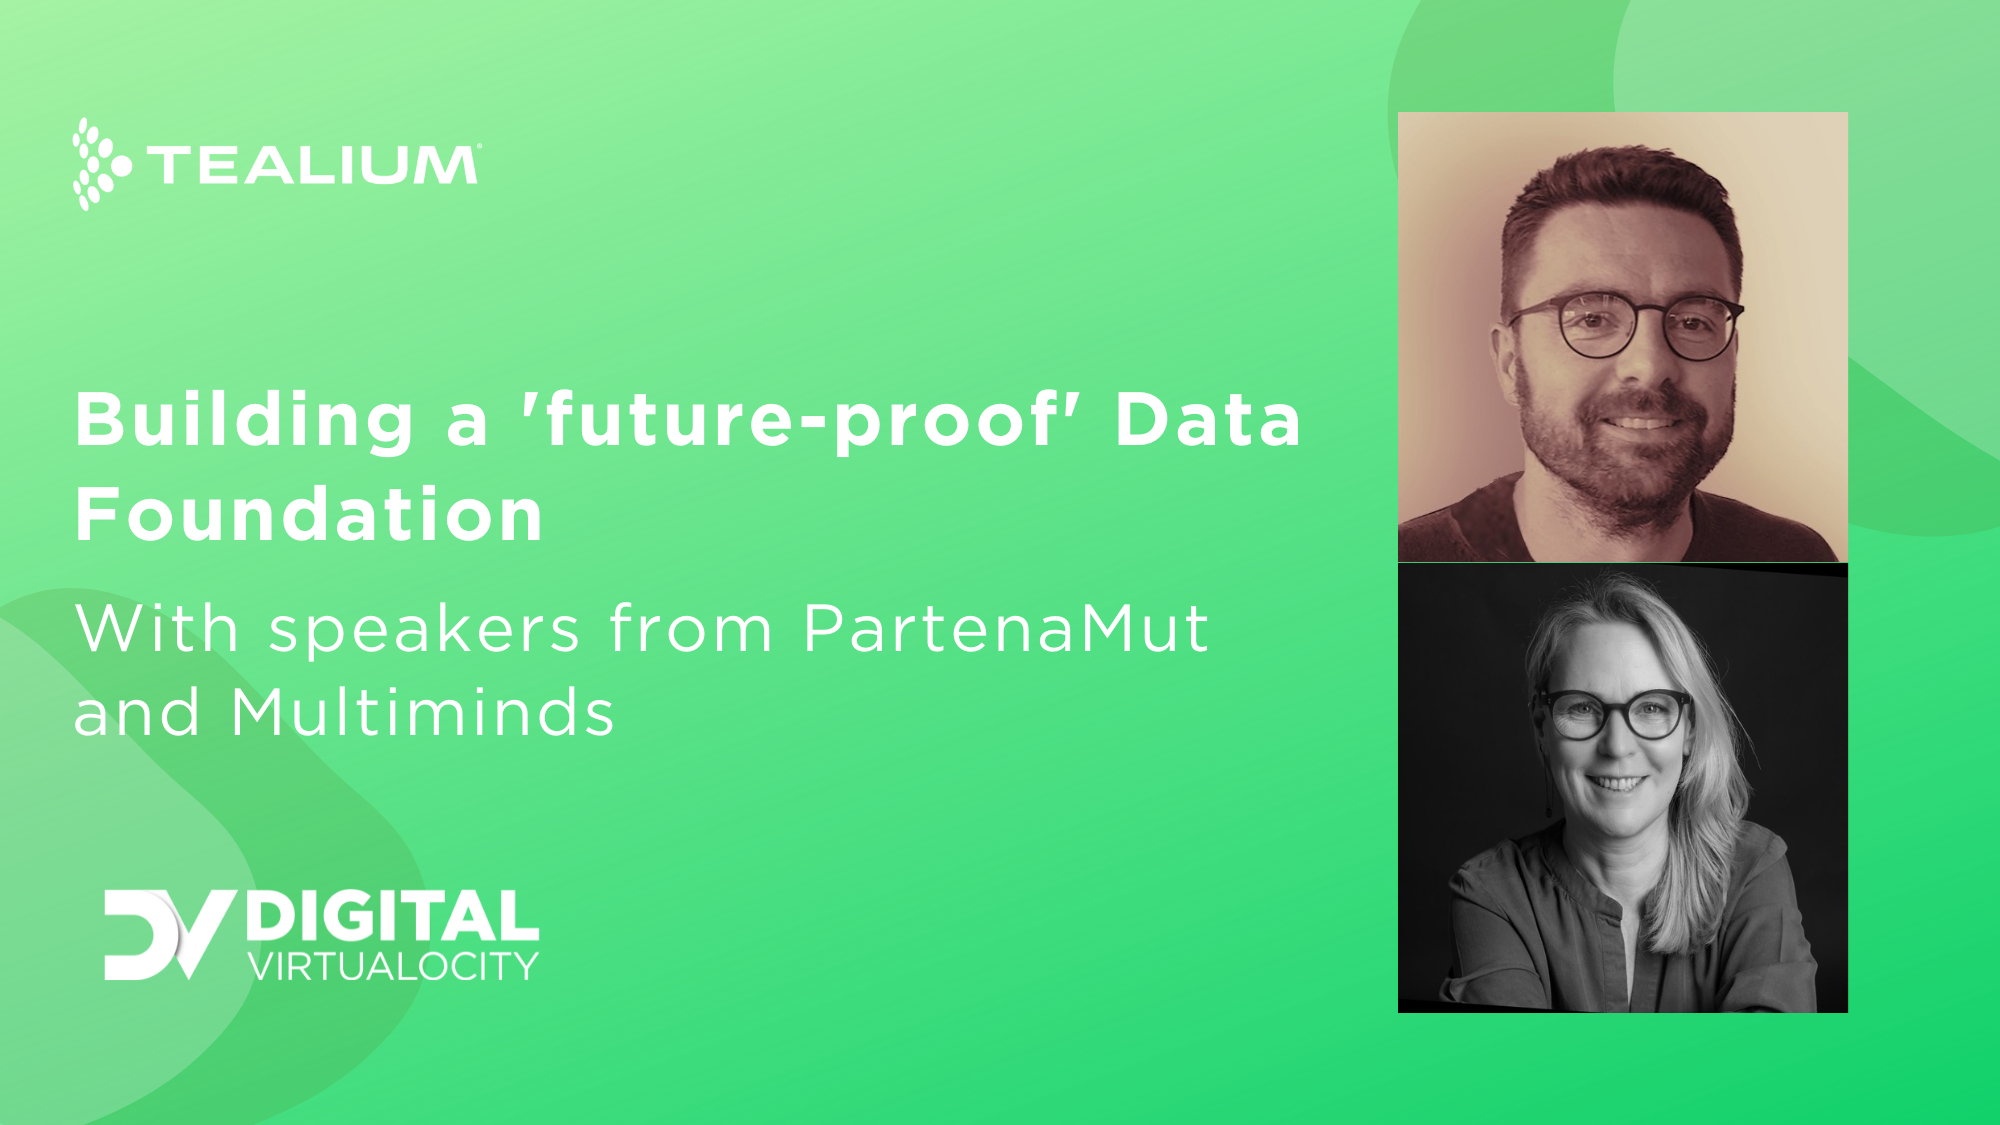 Future proof your data foundation.